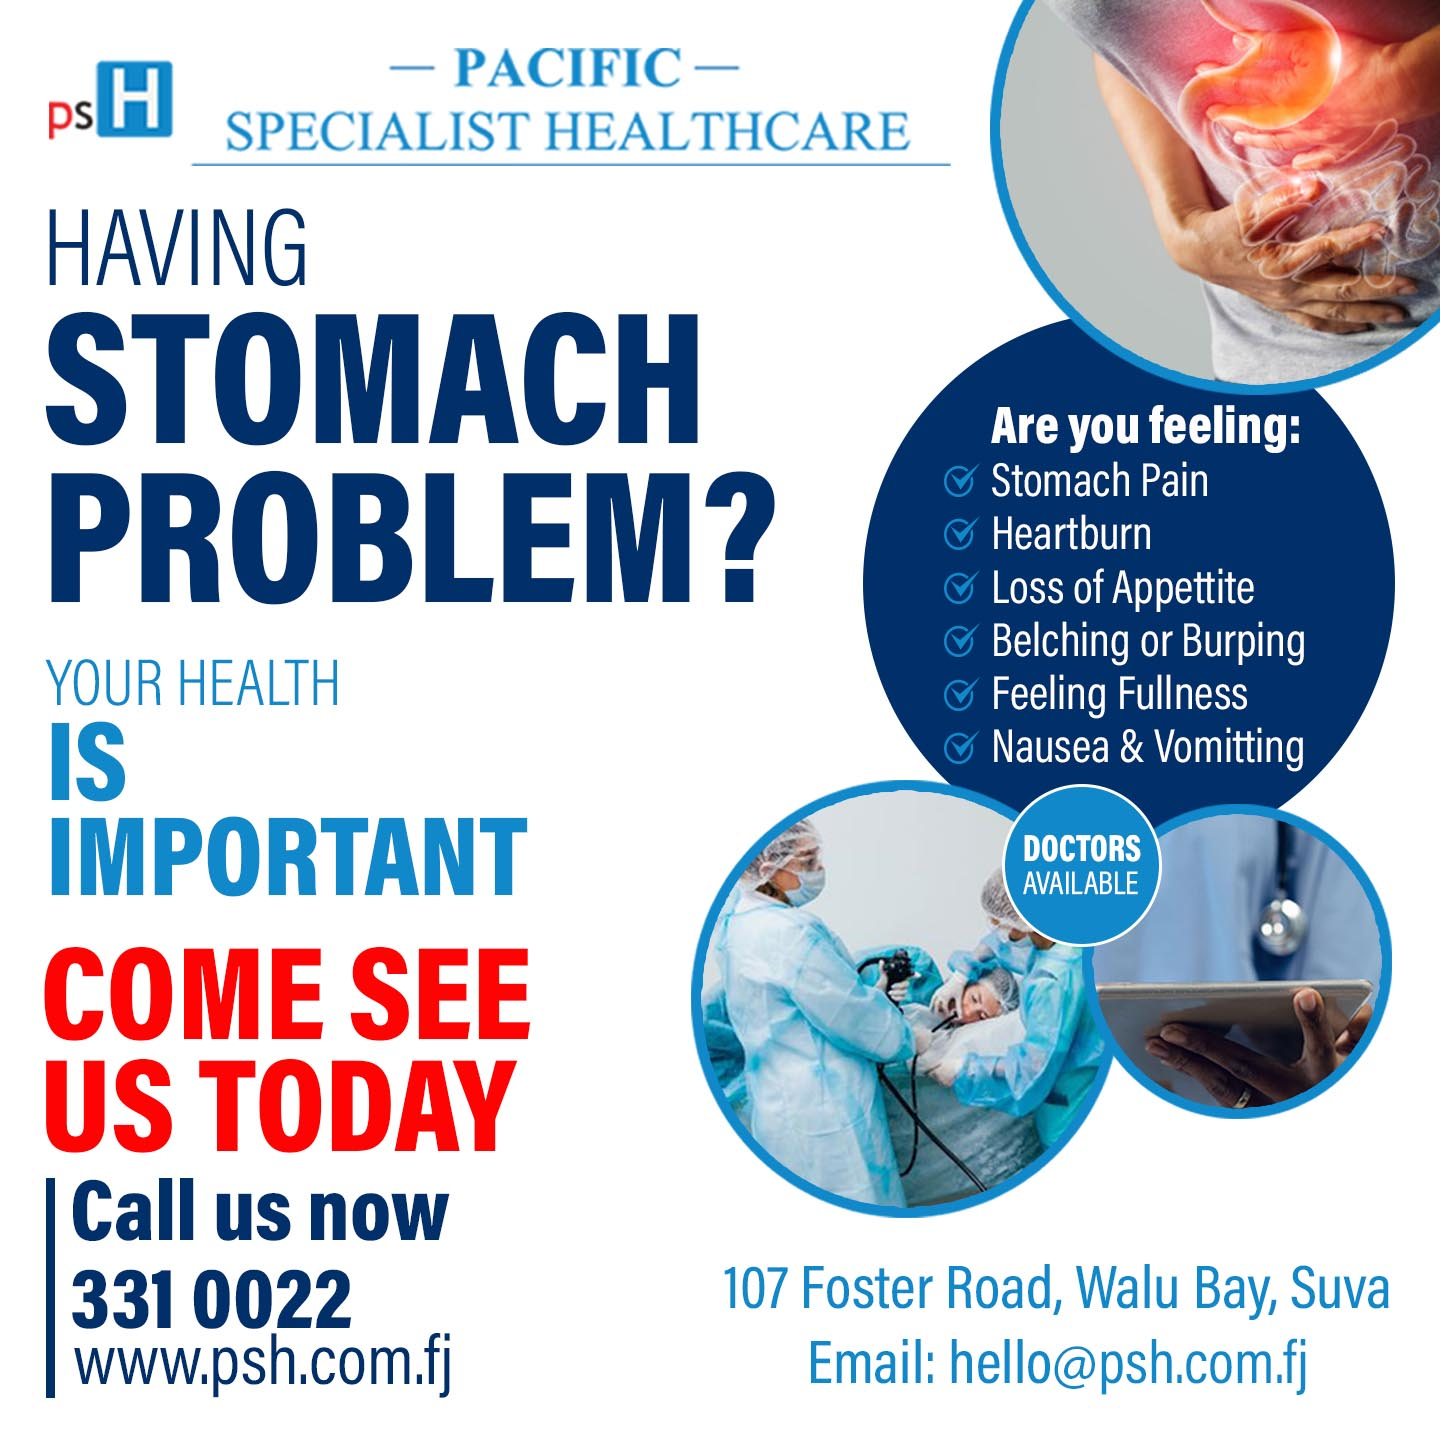 Pacific Specialist Healthcare